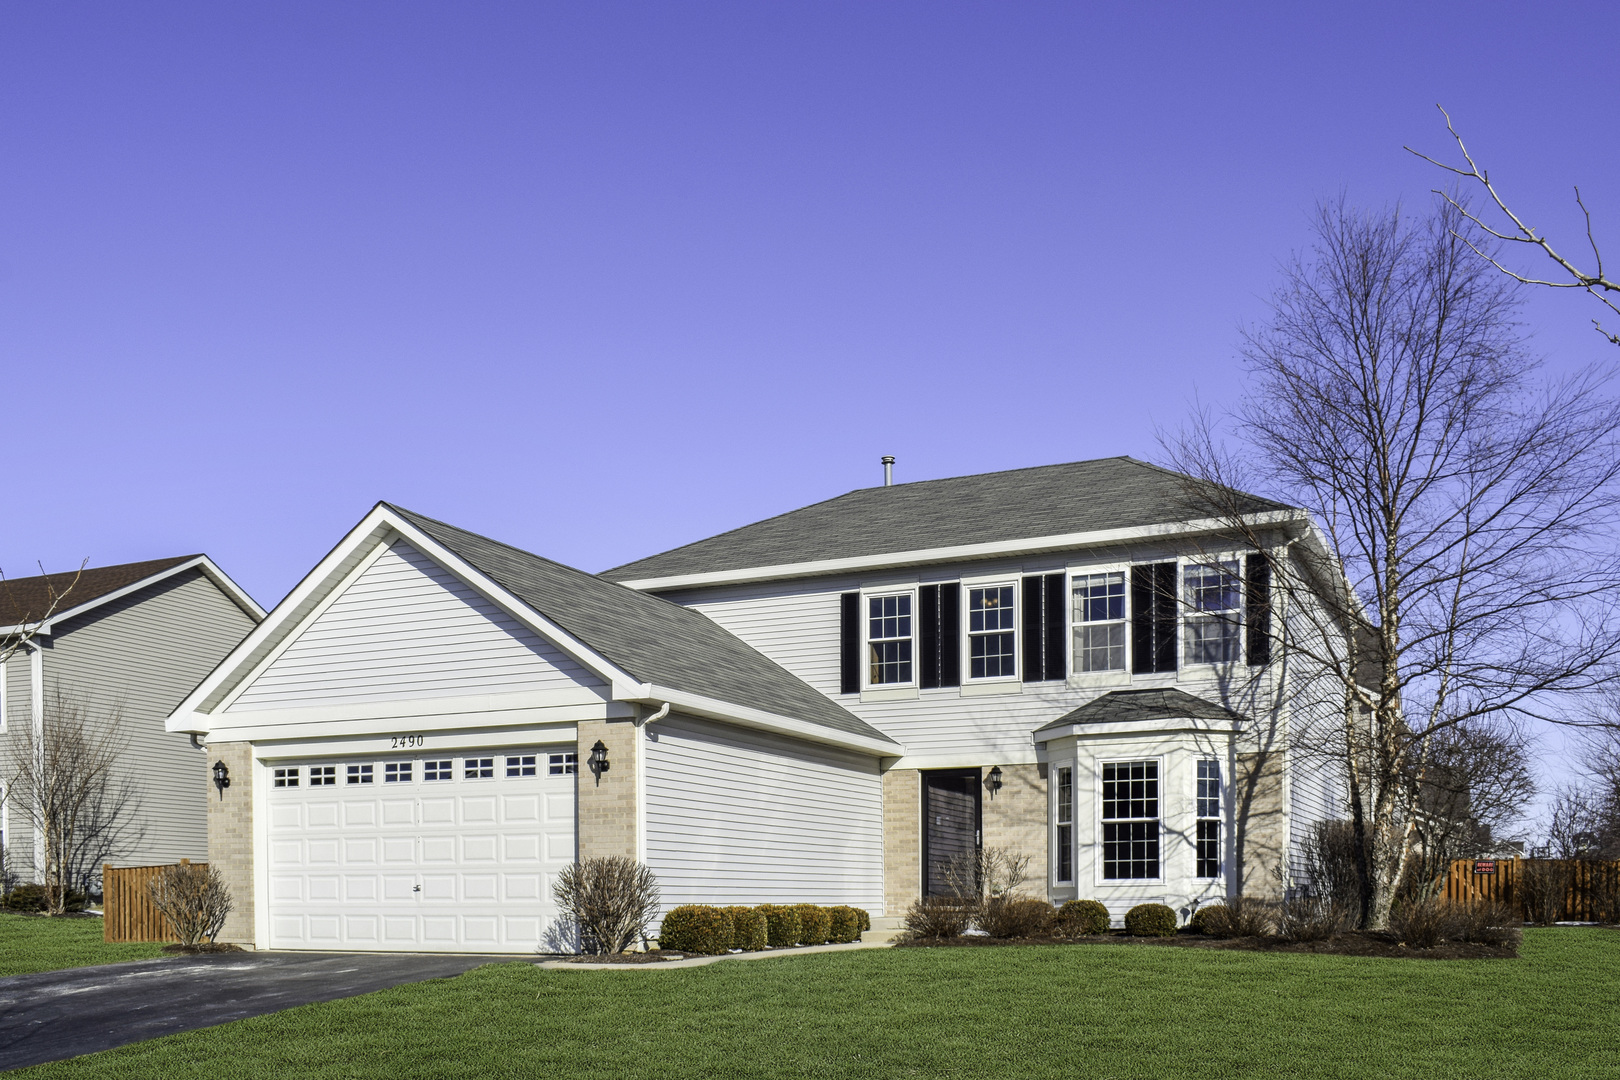 Photo for 2490 Ross Street, Hampshire, IL 60140 (MLS # 10644776)